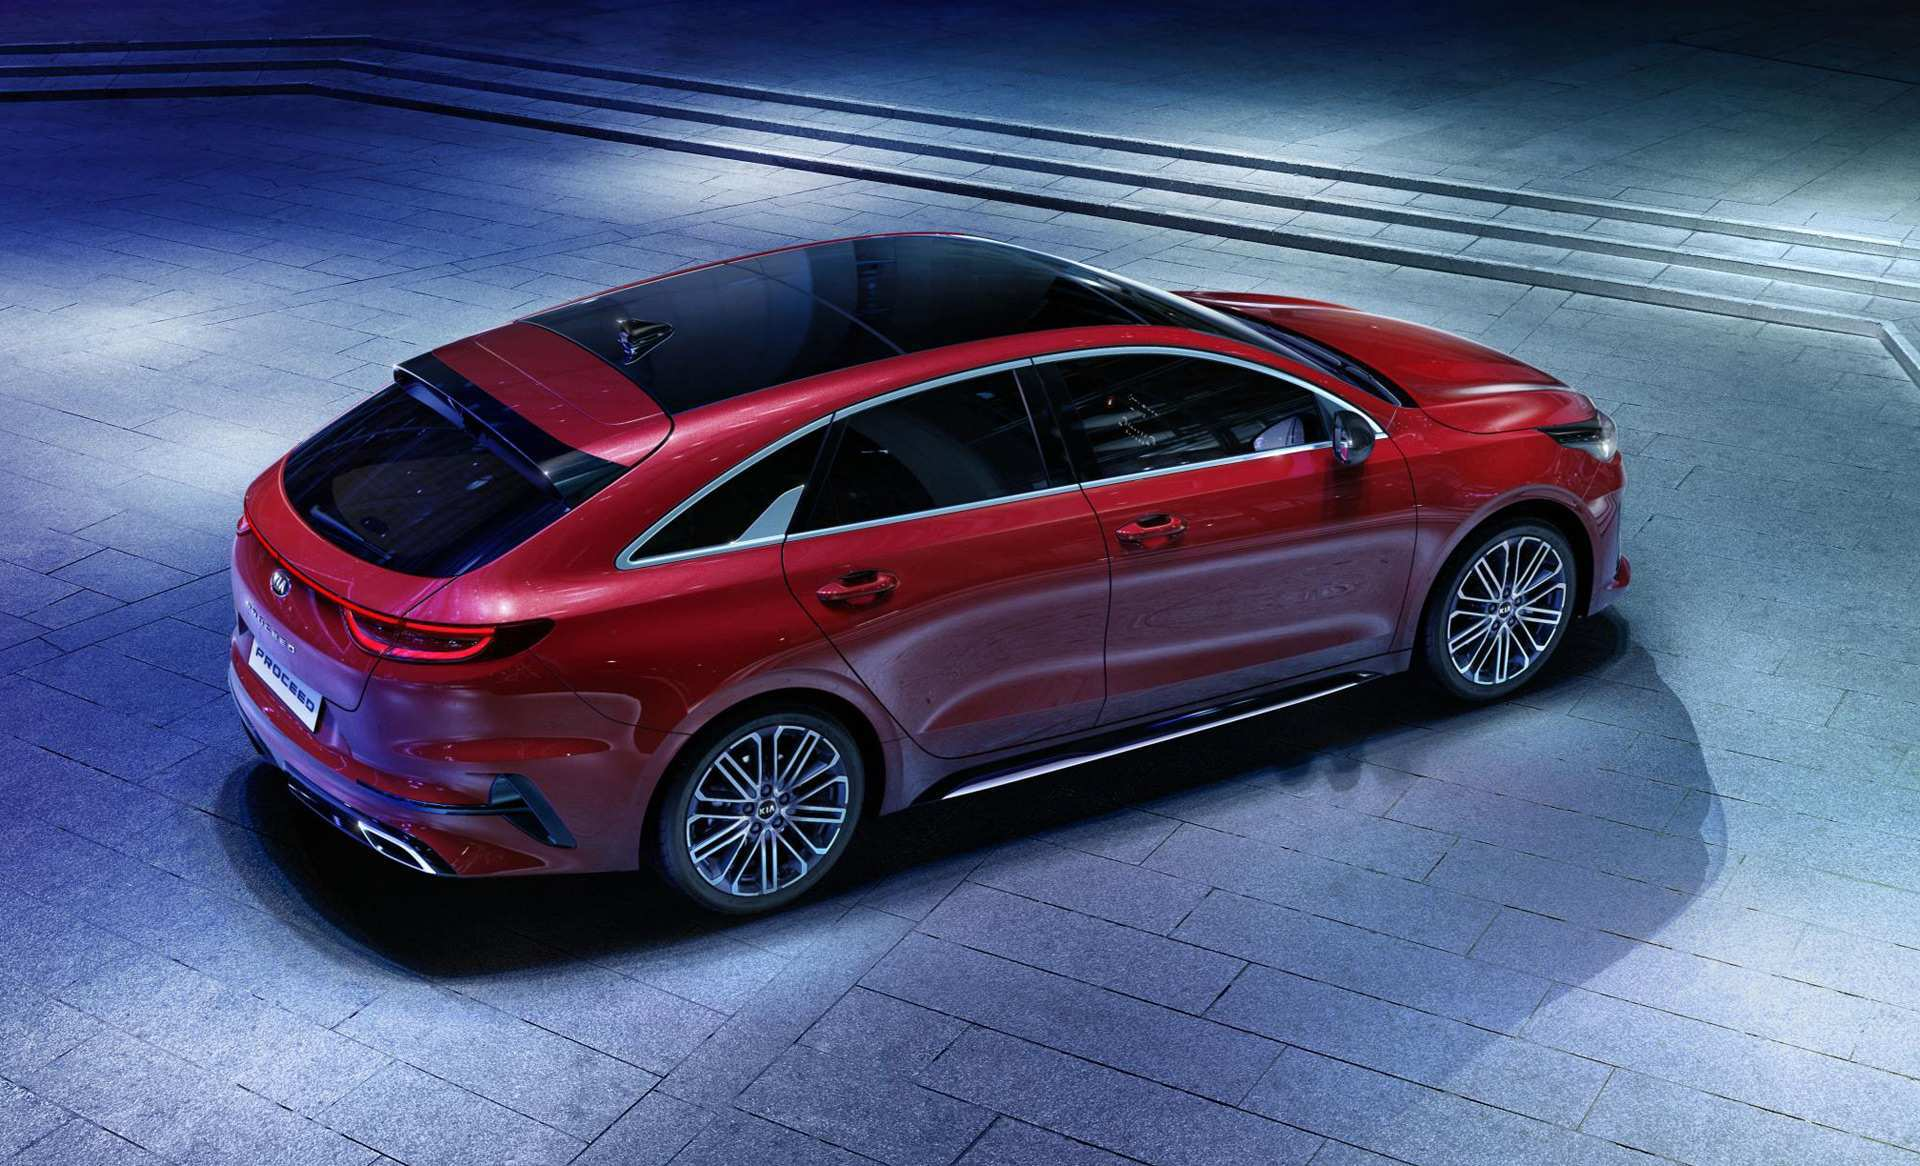 38 New Kia Proceed 2020 Release Date and Concept